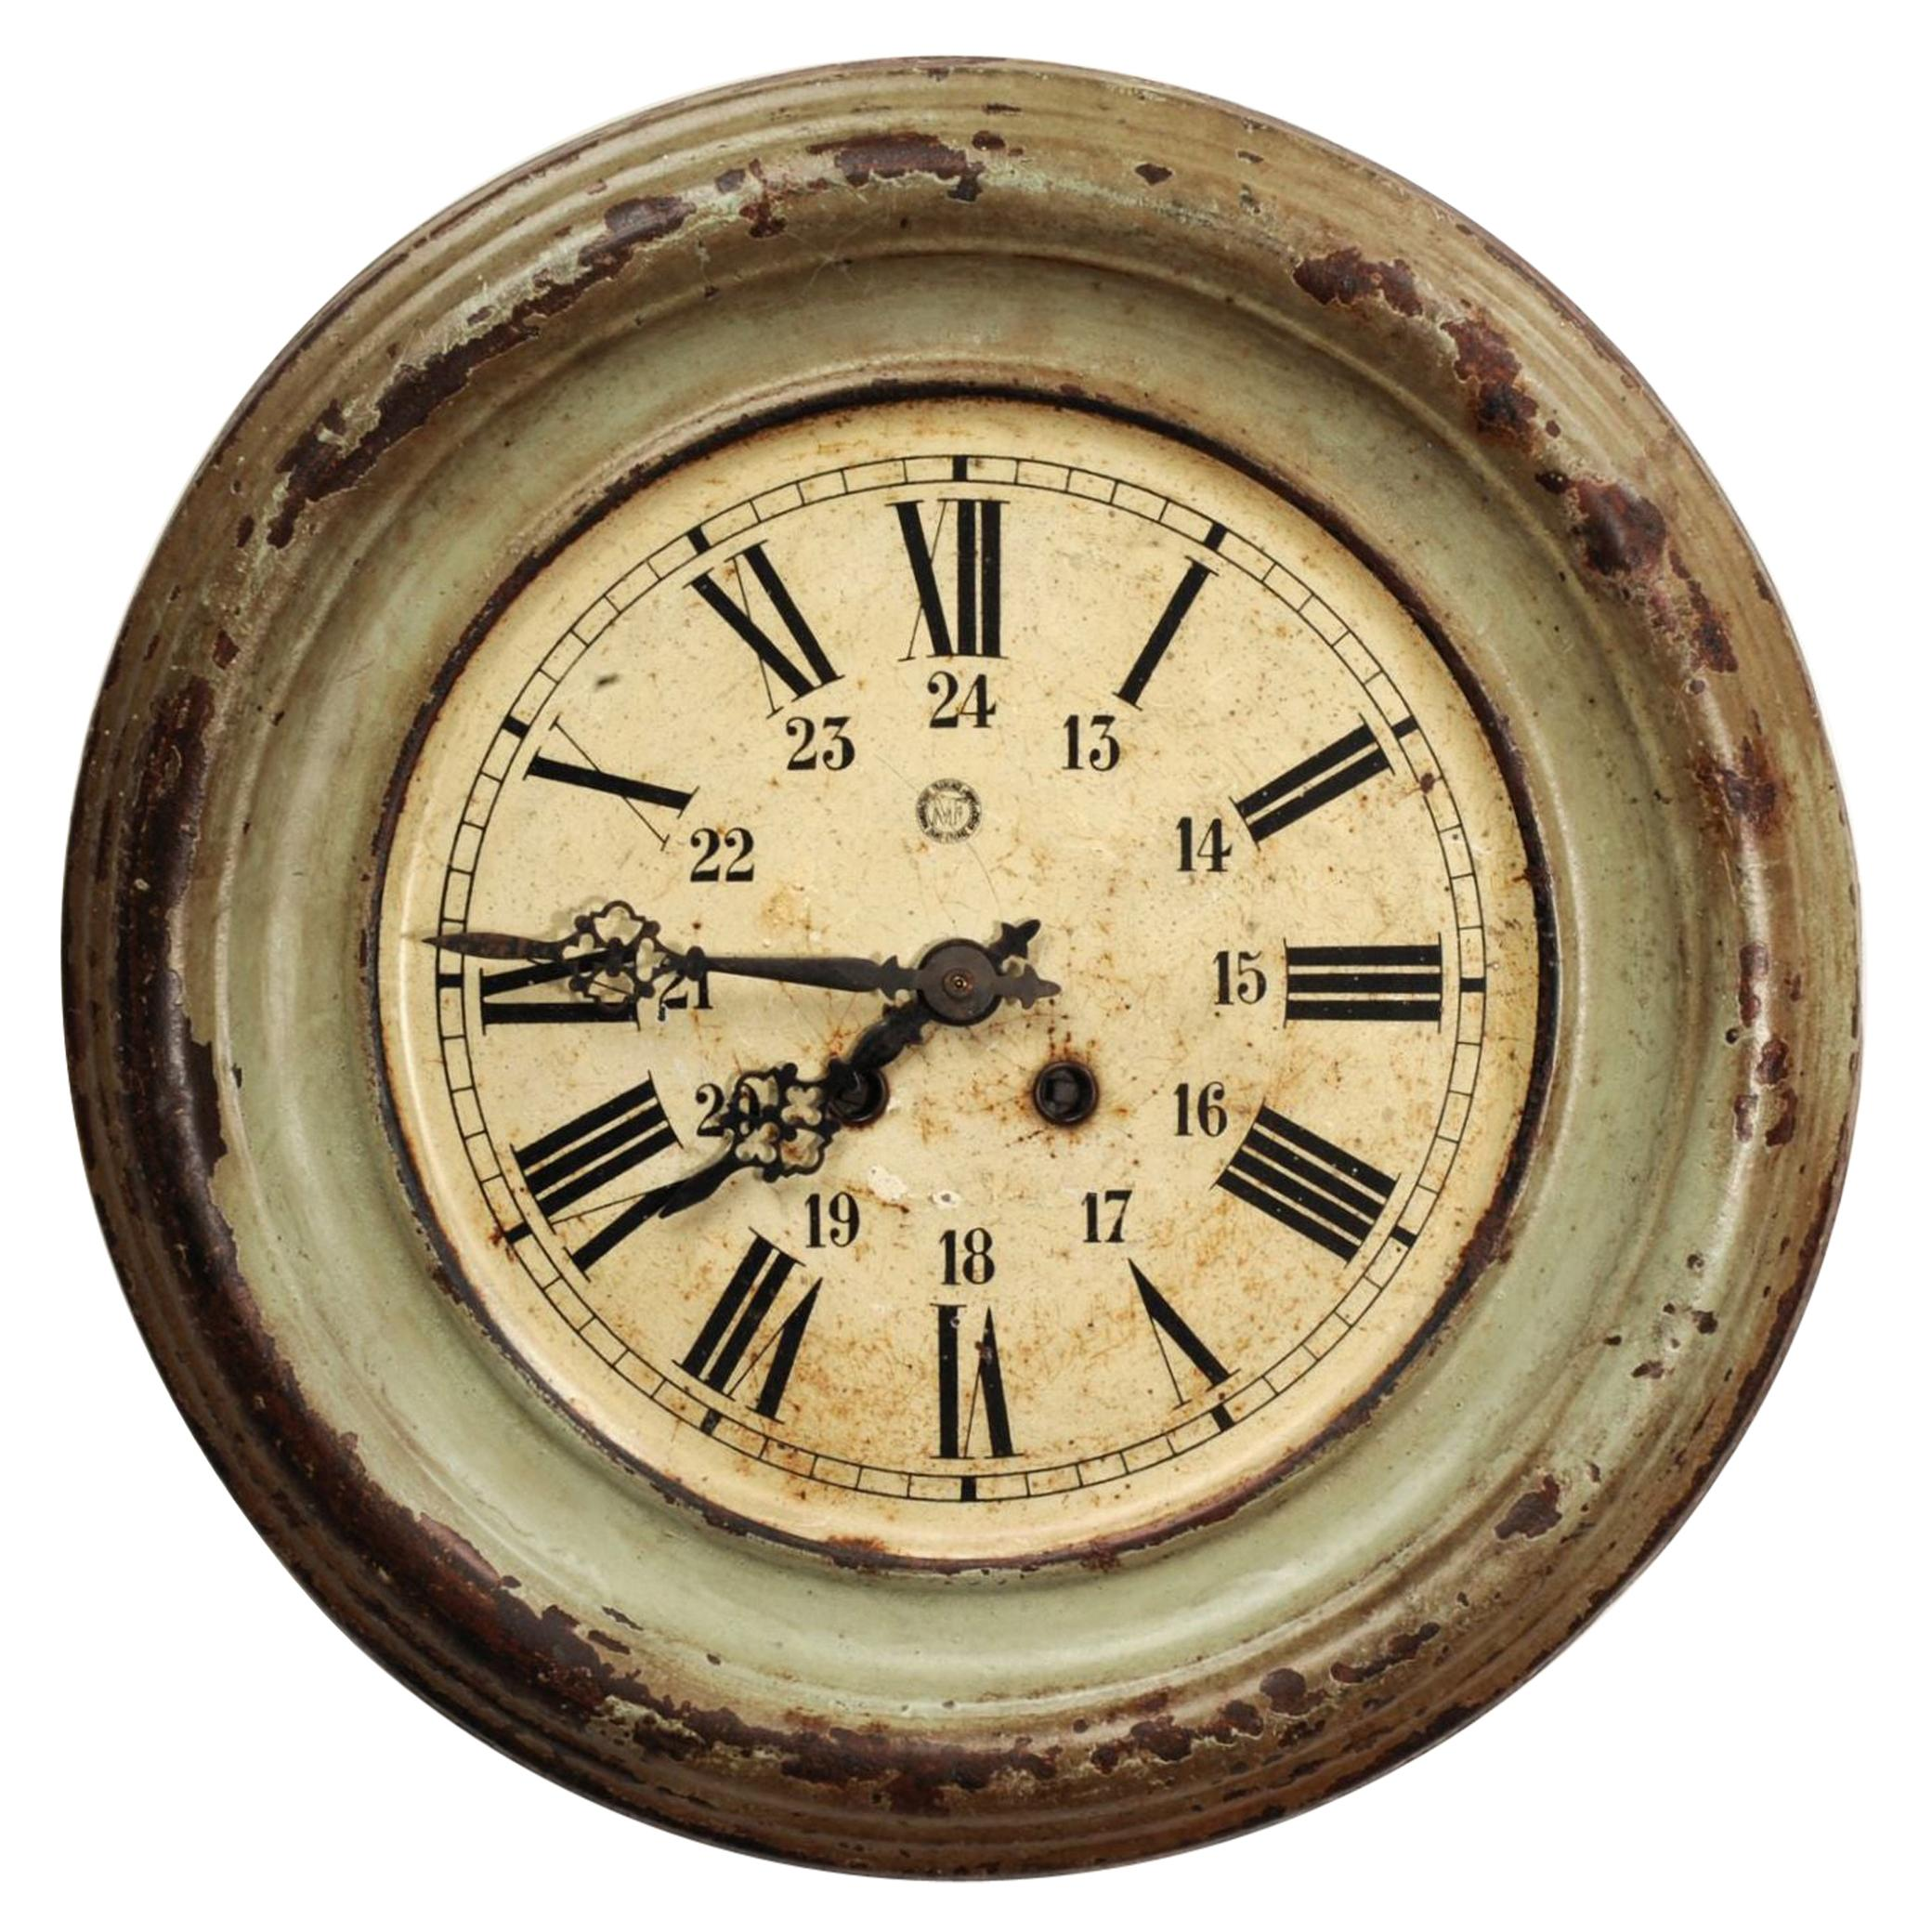 Antique French Clock Dial Face by Japy Frères, Industrial/Railway